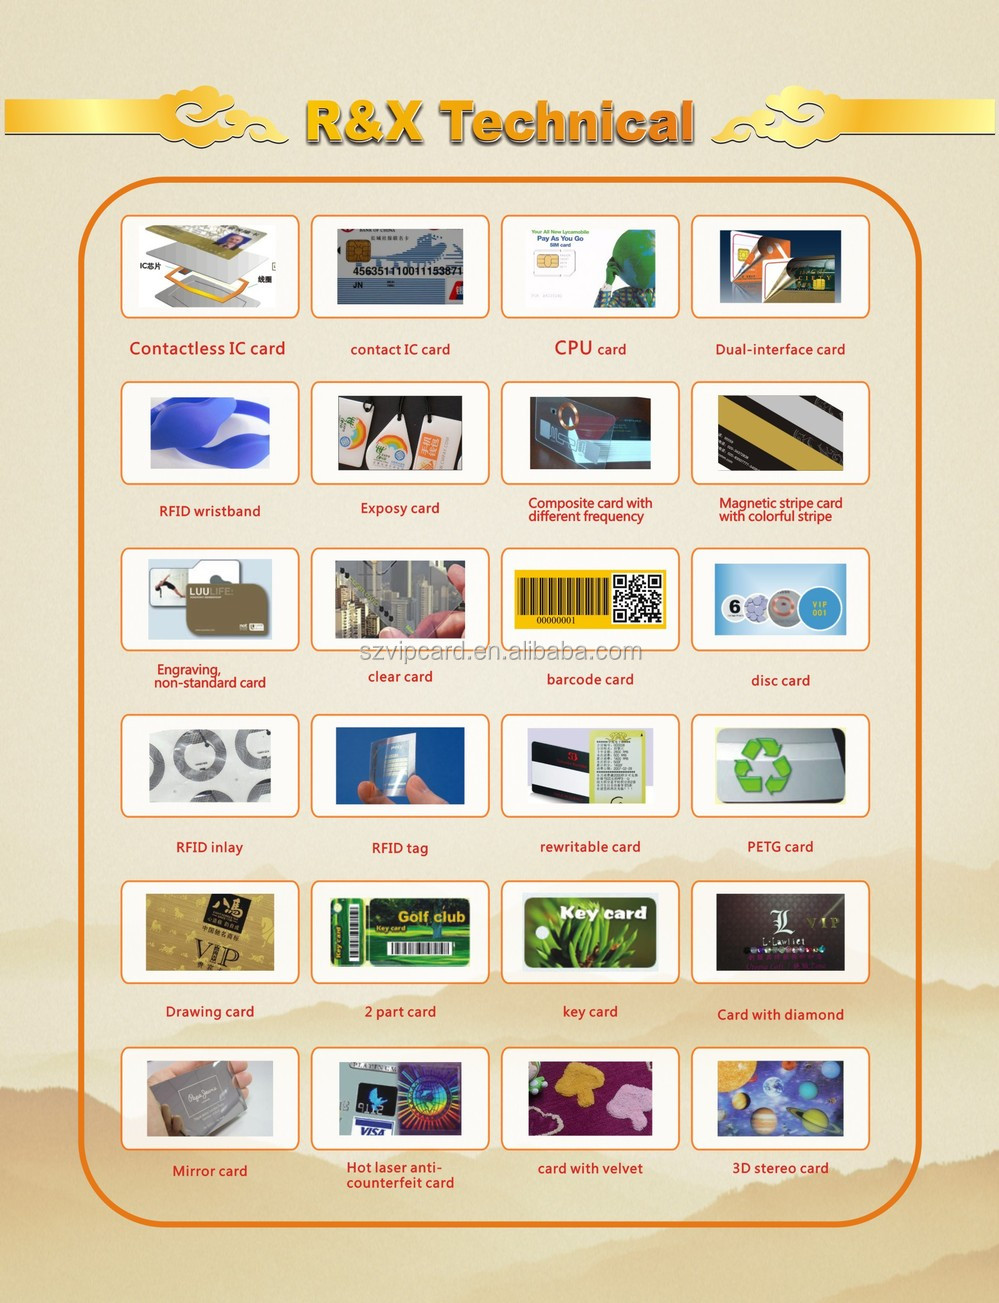 Electric Ventilation Fans Electrical Fan Materials Picture Of 250 To 5000 Watts Pwm Dc Ac 220v Power Inverter Supermarket Club Cr80 Plastic Membership Card Pvc Barcode From Shenzhen